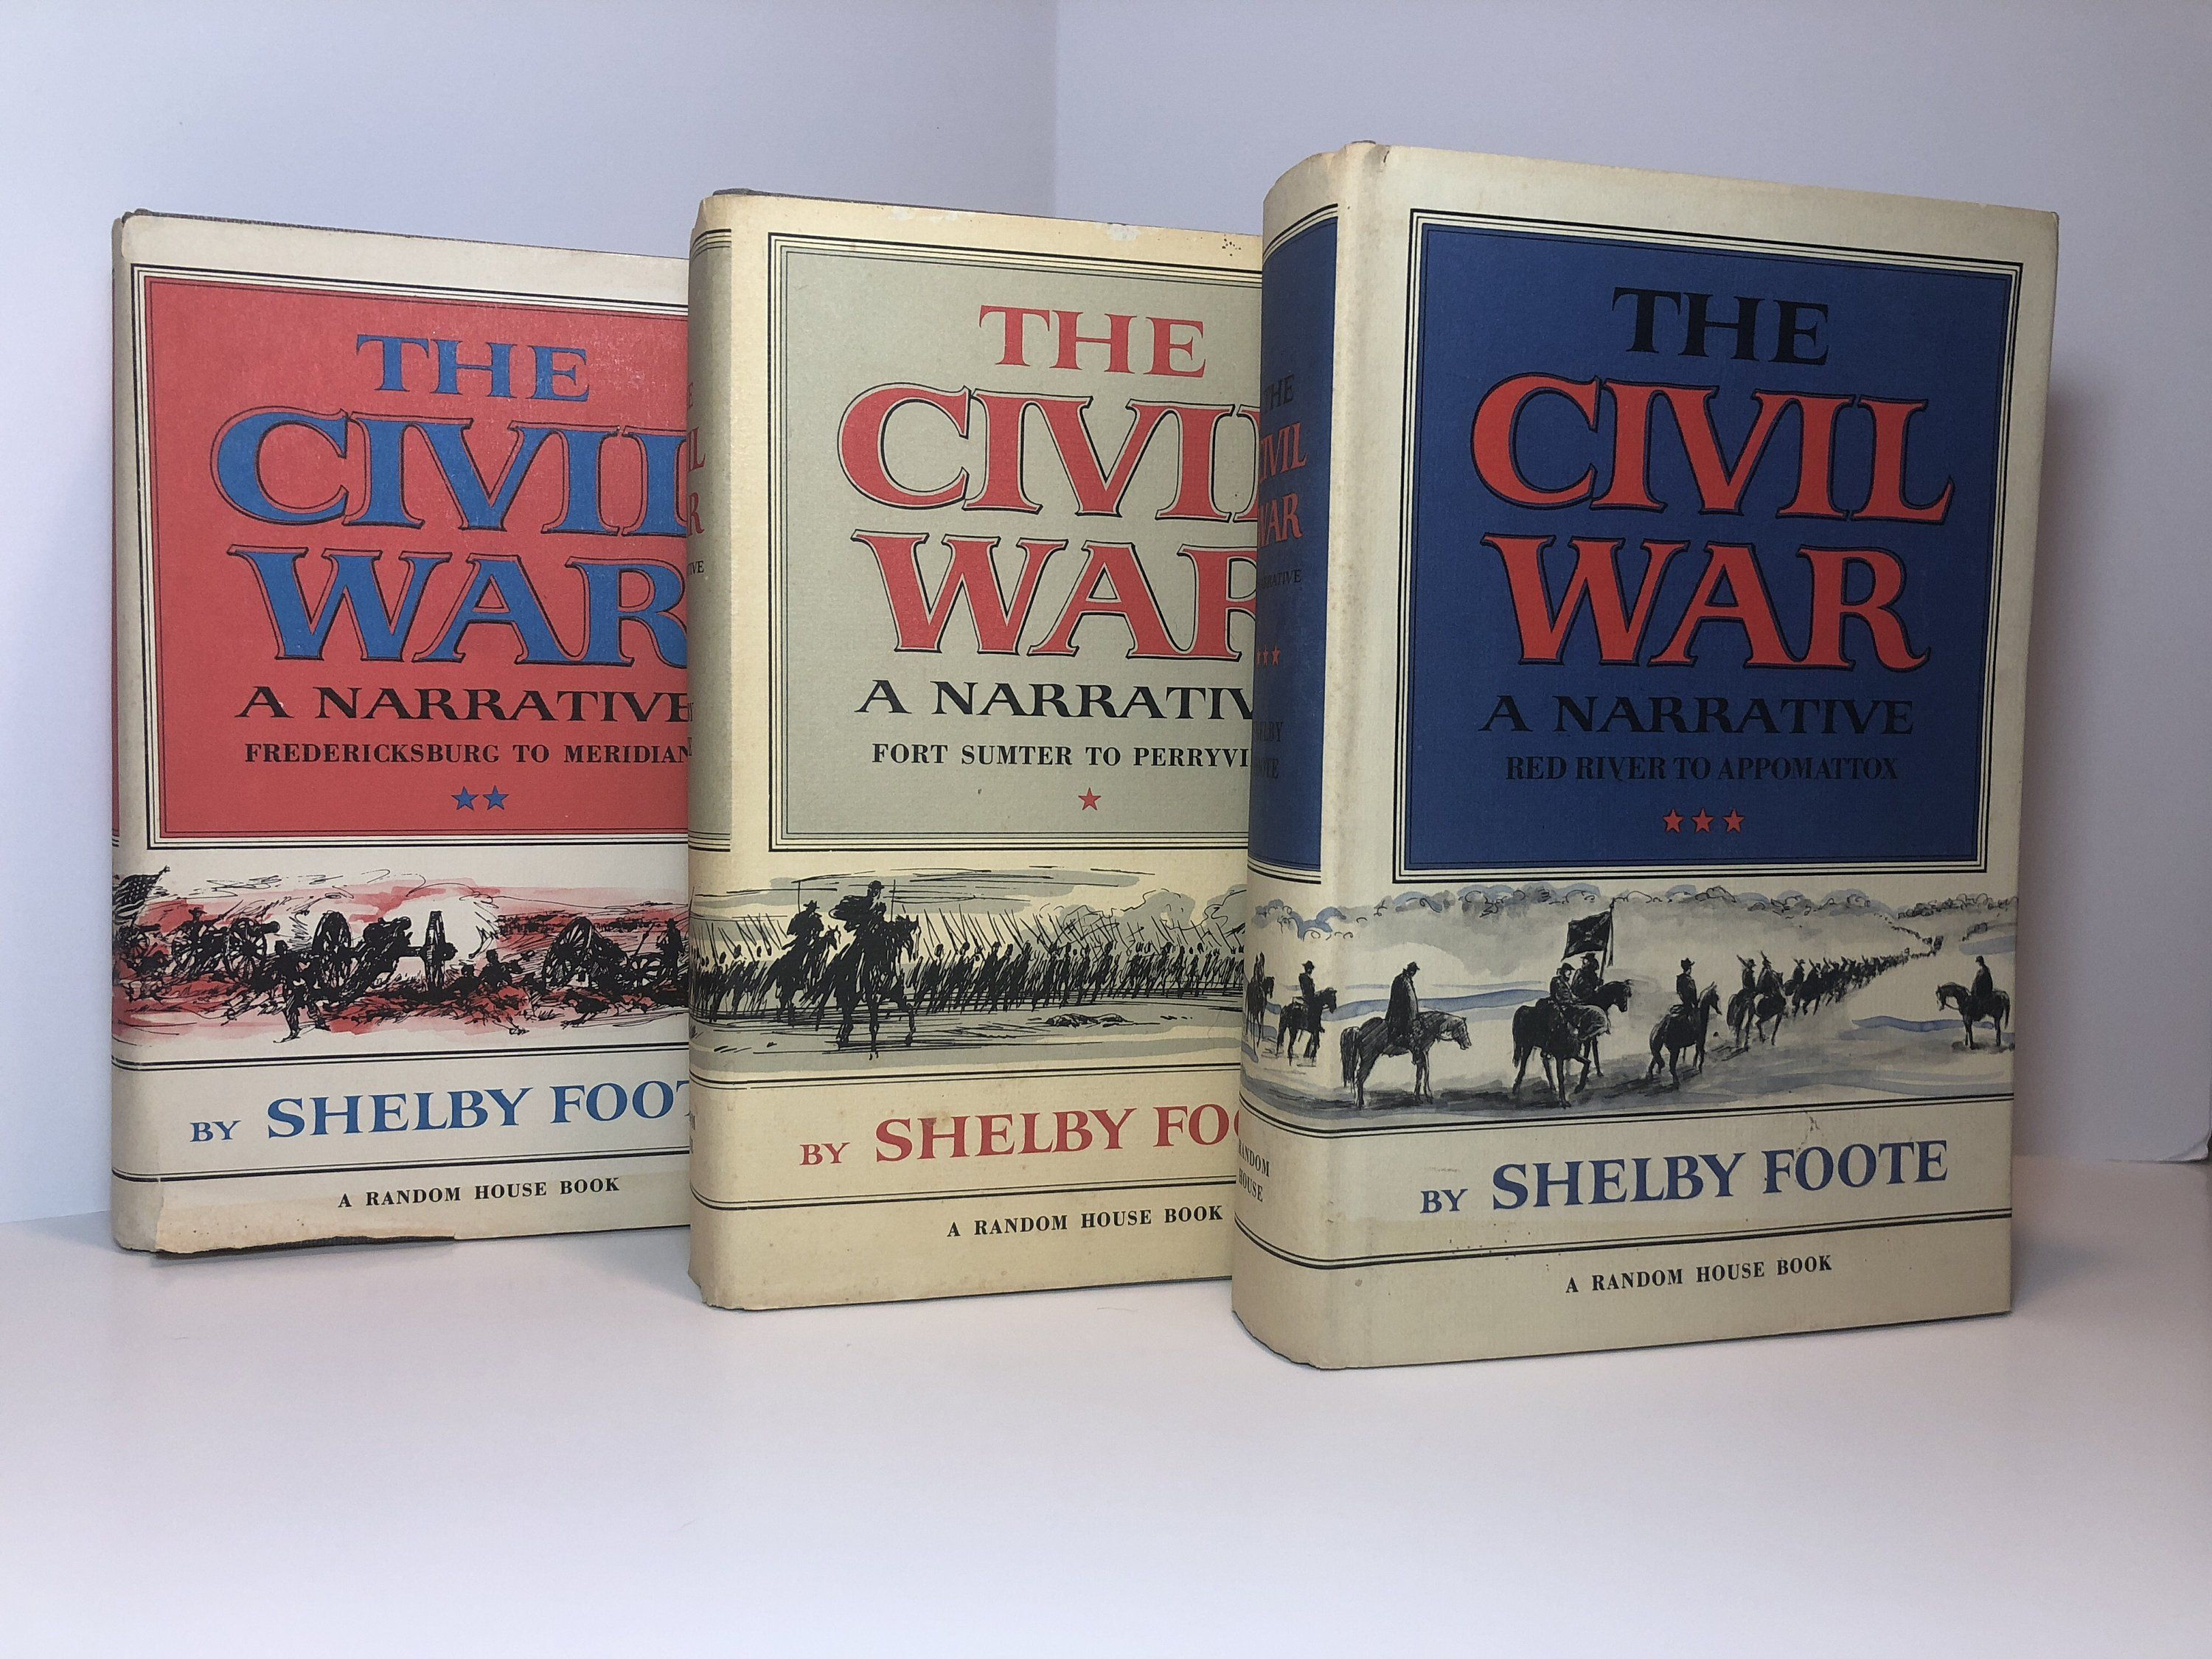 The Civil War A Narrative 3 Volume Set By Shelby Foote 1963 Fort Sumter To Perryville Fredericksburg To Meridian Red River T Shelby Foote Civil War Fort Sumter